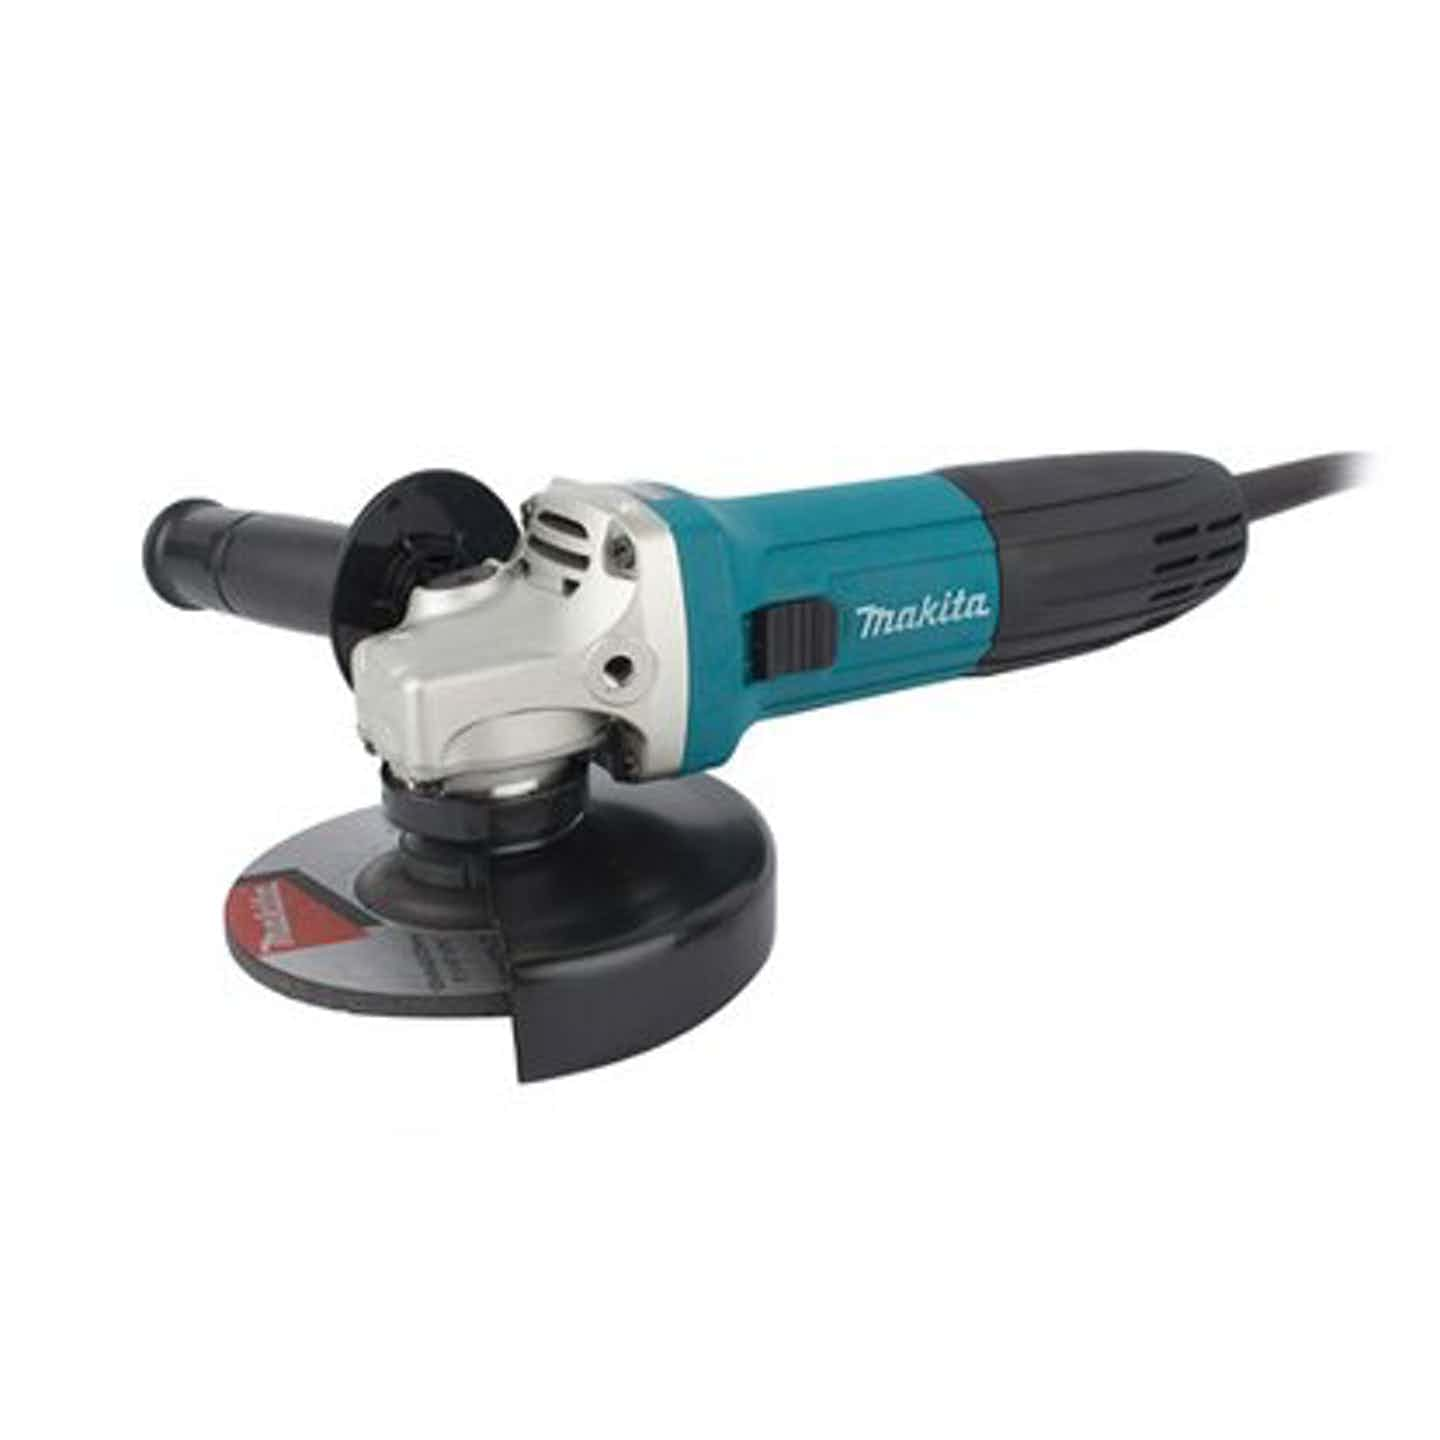 Makita Szlifierka kątowa GA5030R 720 W 125 mm